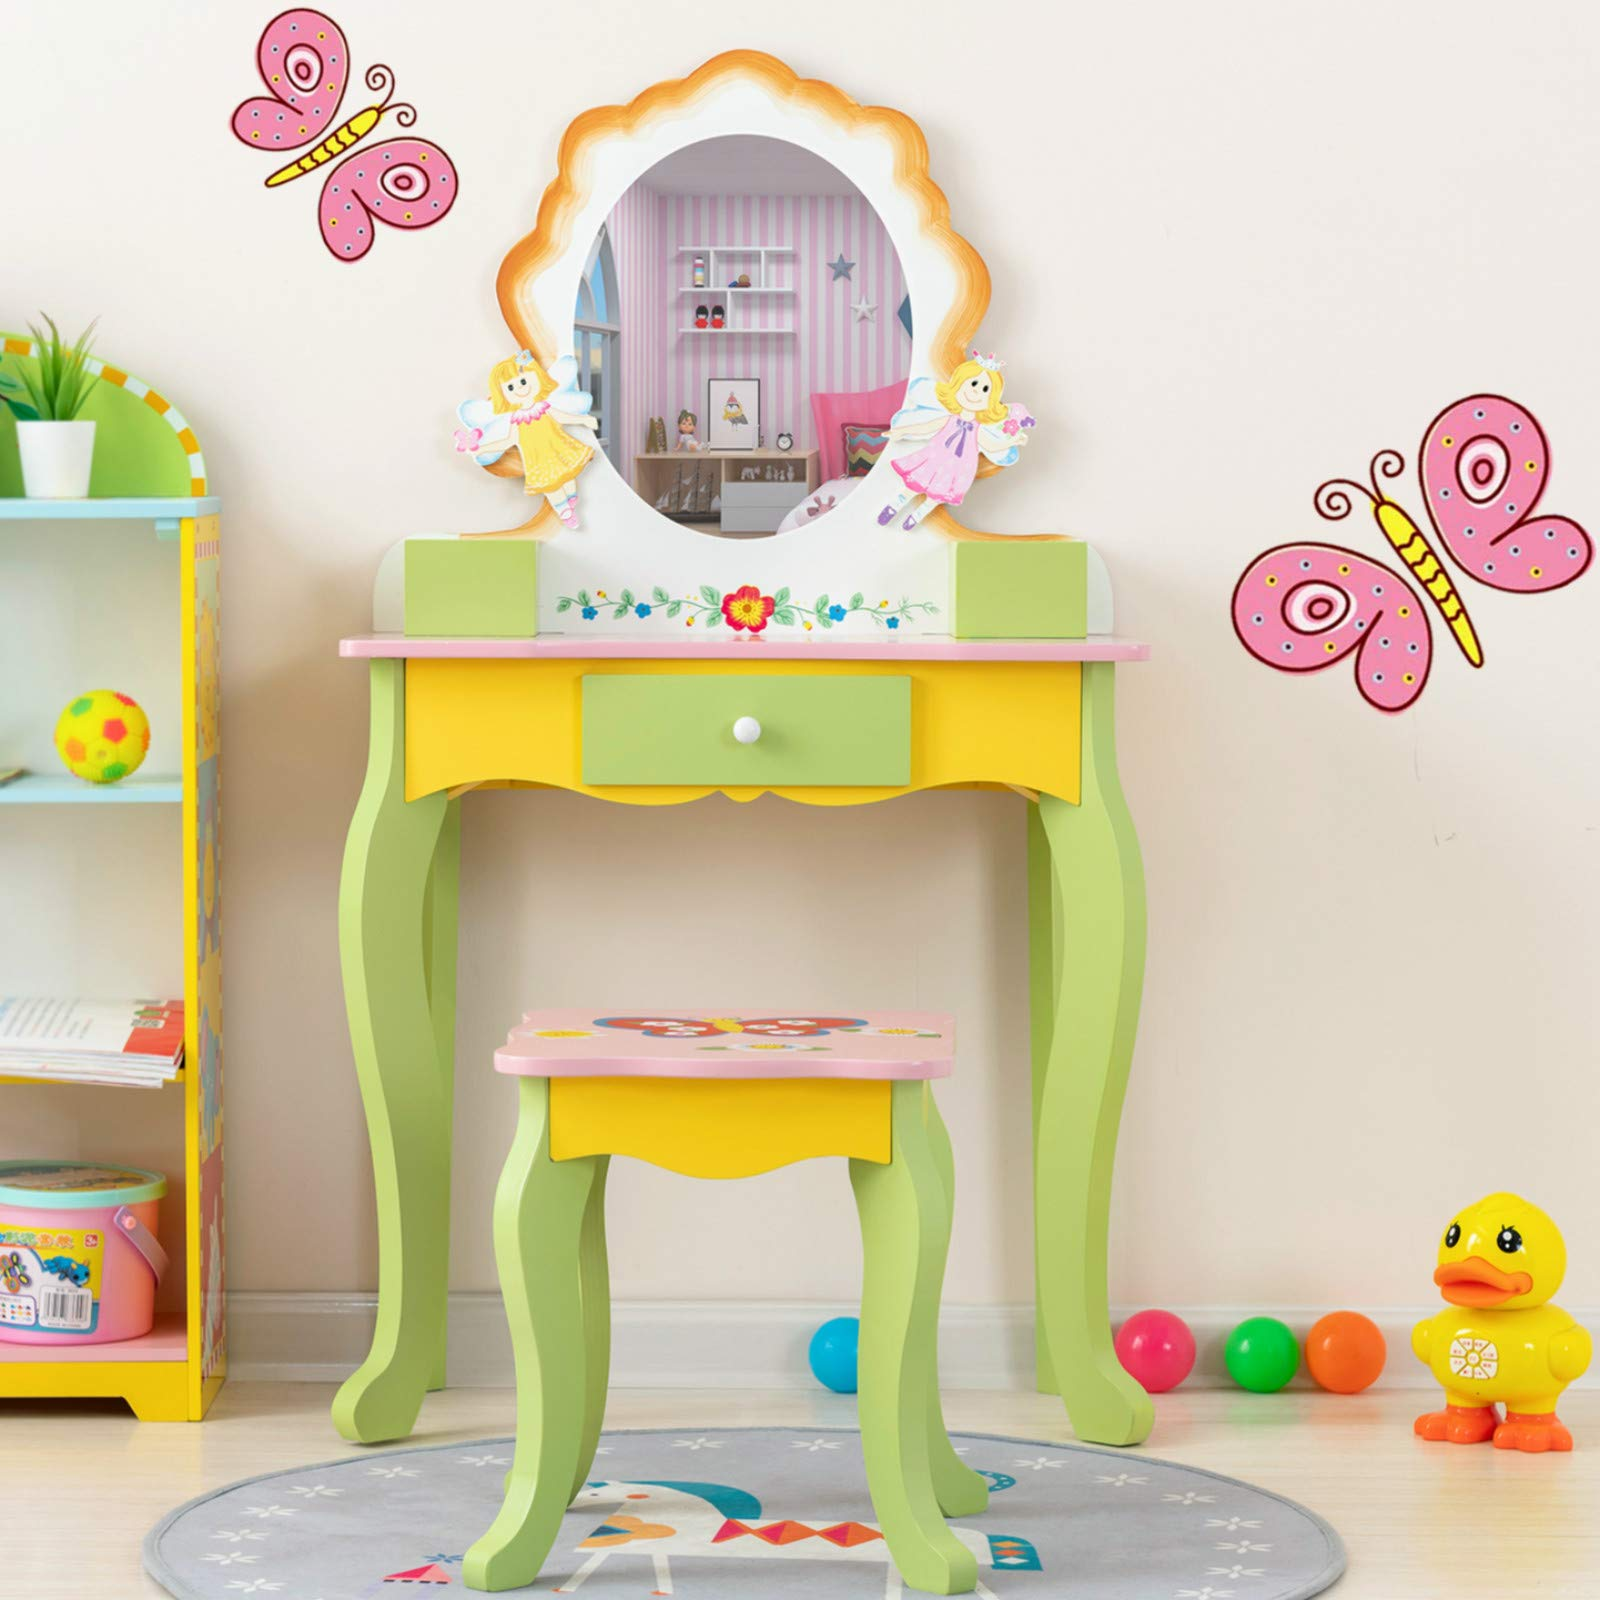 mecor Kids Vanity Set with Mirror,Little Girls Princess Makeup Dressing Table with Stool/Drawer,Hand Painted Vanity Desk for Children Yellow&Green by mecor